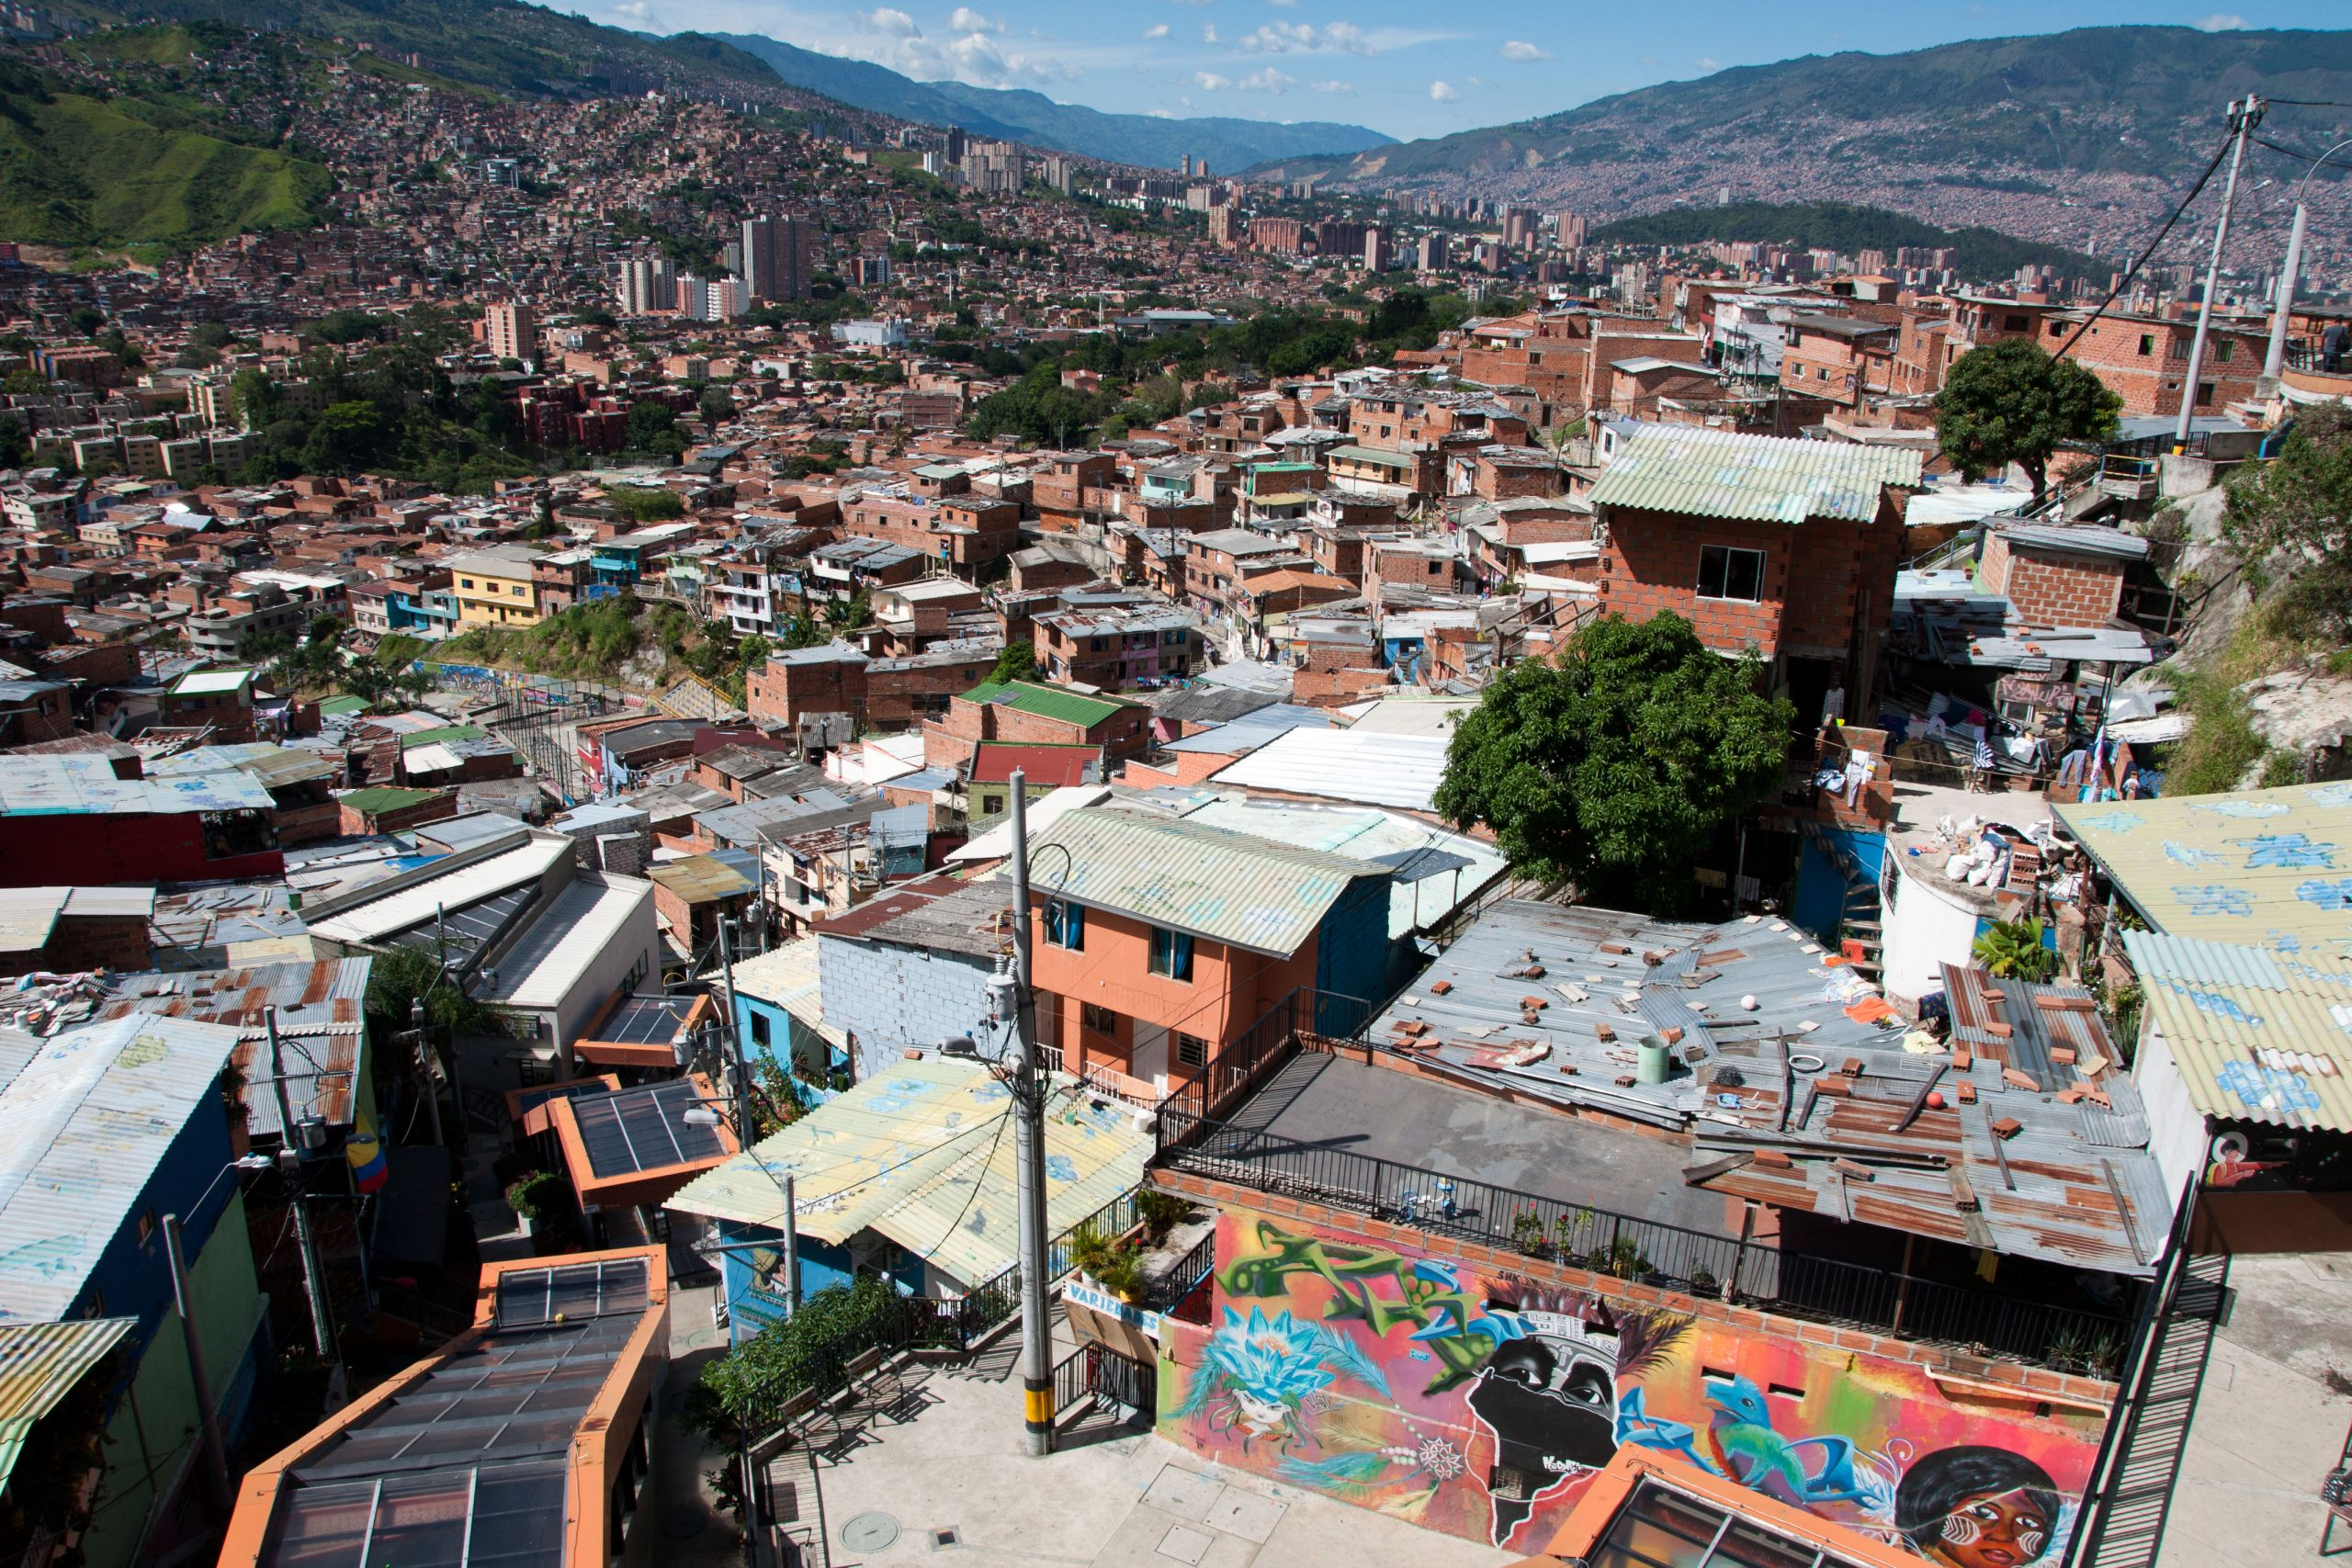 Colombia instagram spots, most instagrammable places in Colombia, Colombia photos, Colombia photography, Comuna 13